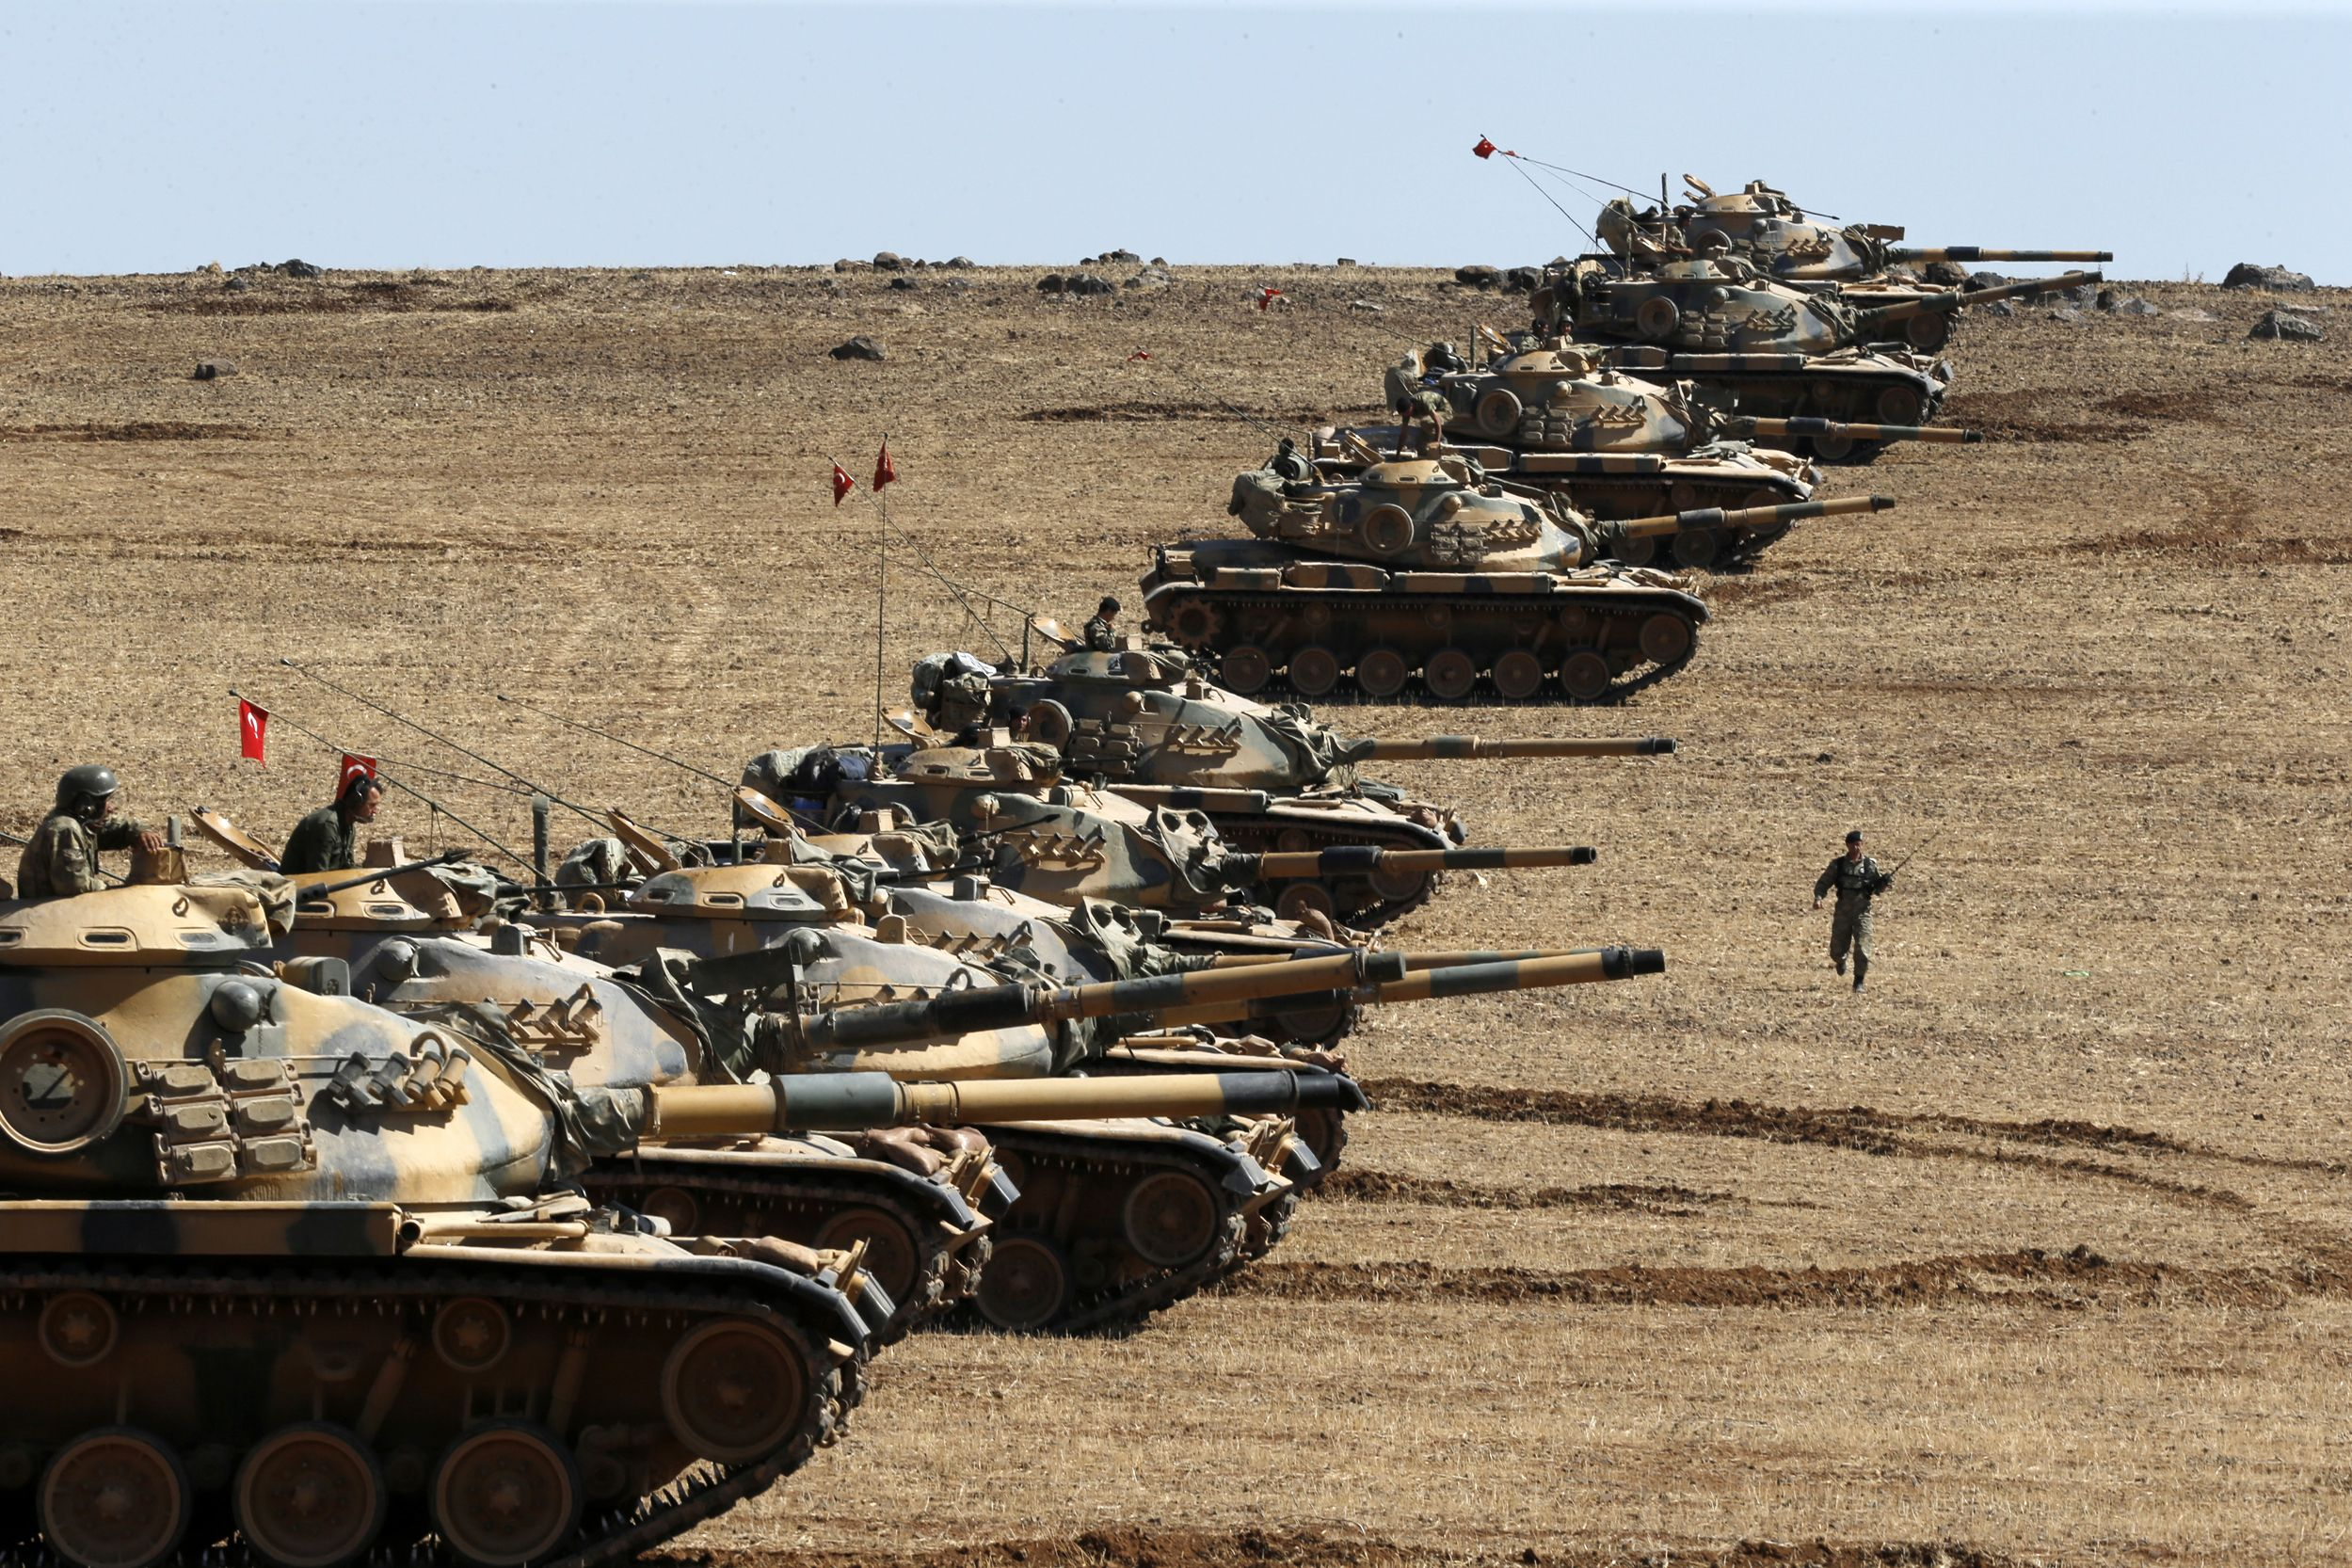 https://i1.wp.com/s.newsweek.com/sites/www.newsweek.com/files/styles/headline/public/2014/10/07/turkish-tanks.jpg